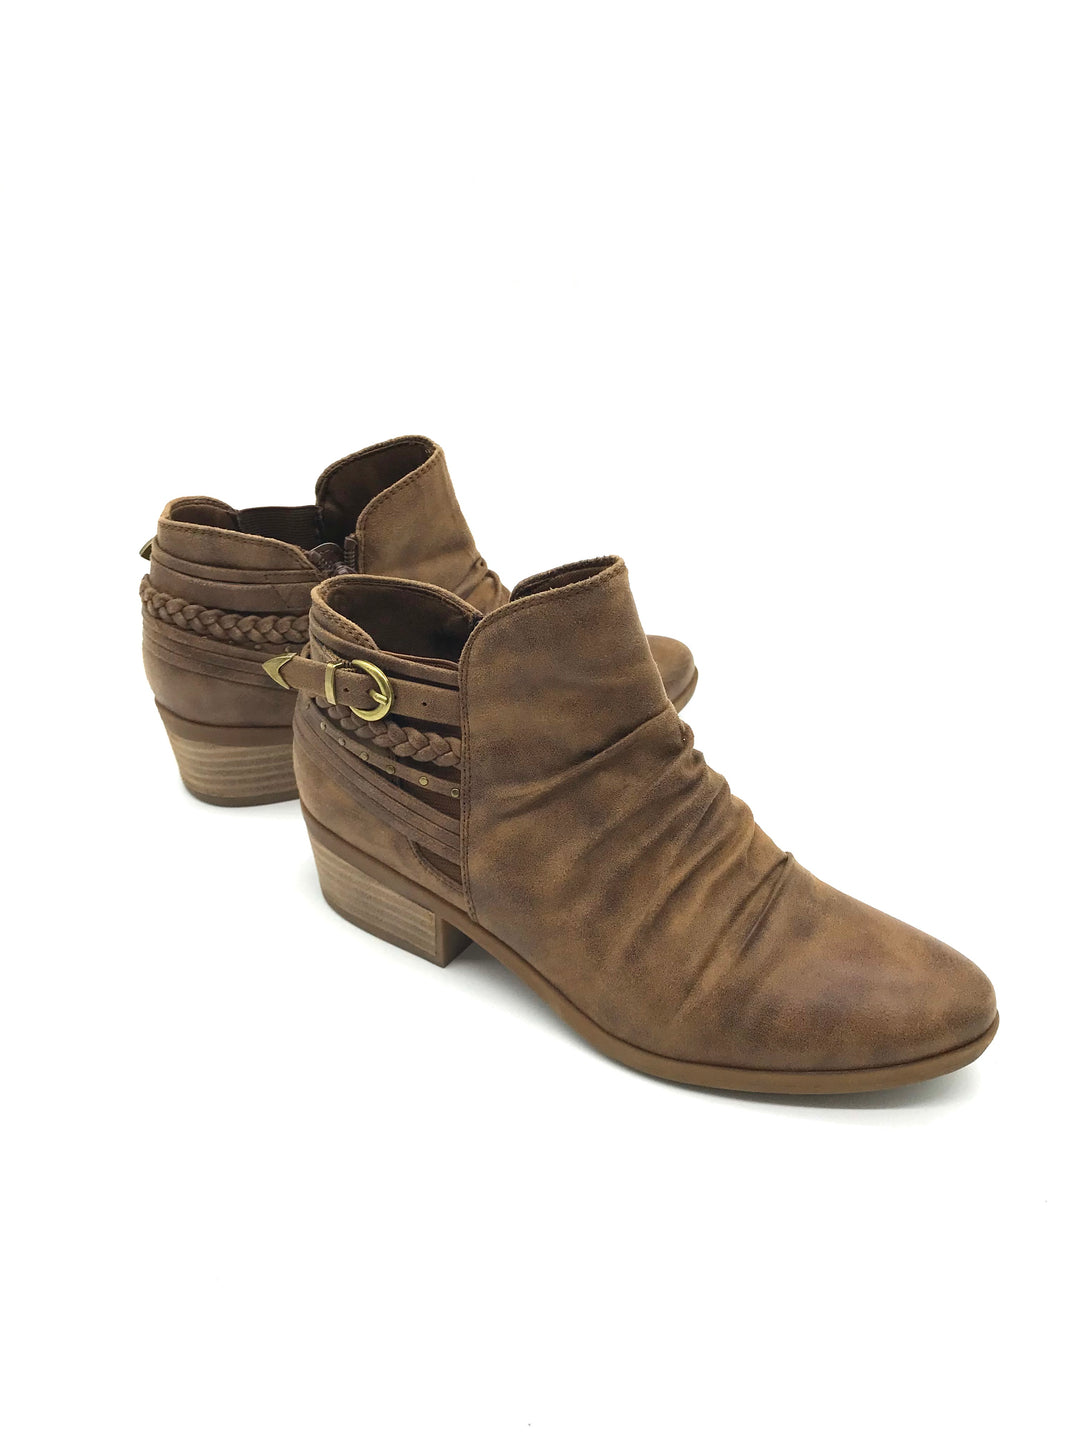 Primary Photo - BRAND: BARE TRAPS <BR>STYLE: BOOTS ANKLE <BR>COLOR: BROWN <BR>SIZE: 7.5 <BR>SKU: 262-26211-136098<BR>AS IS